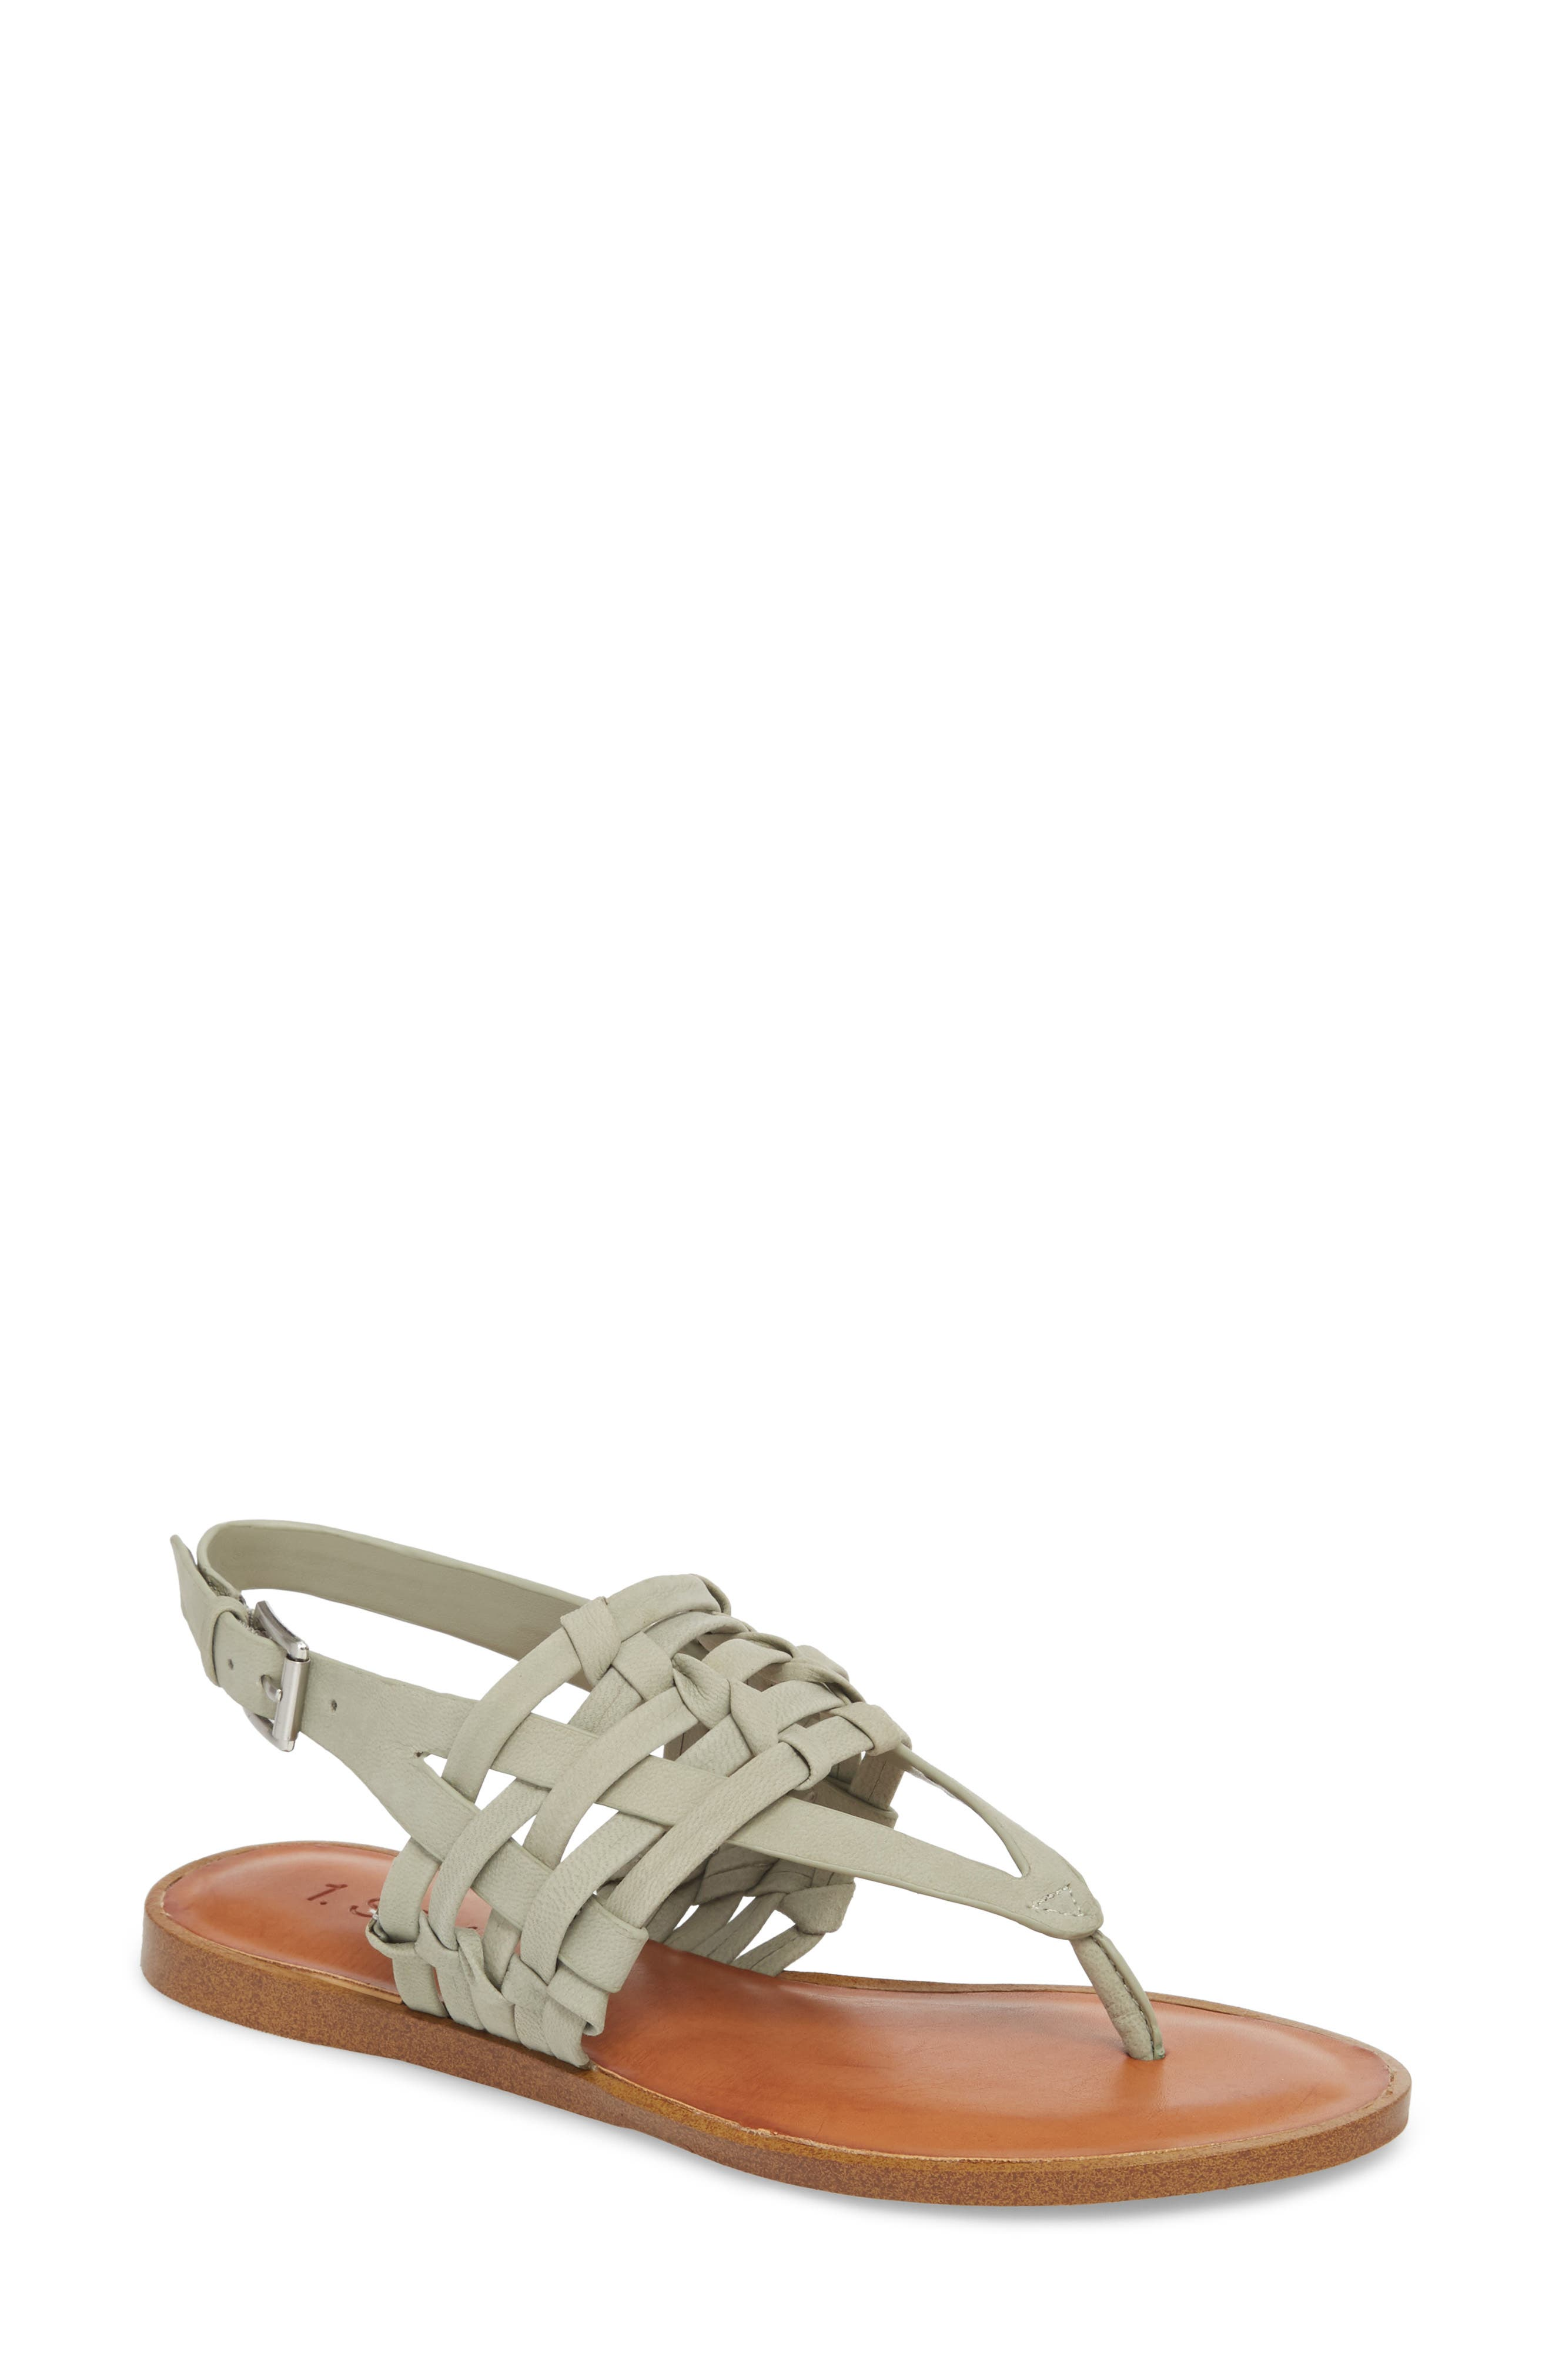 Lenn Sandal,                             Main thumbnail 1, color,                             Nettle Nubuck Leather